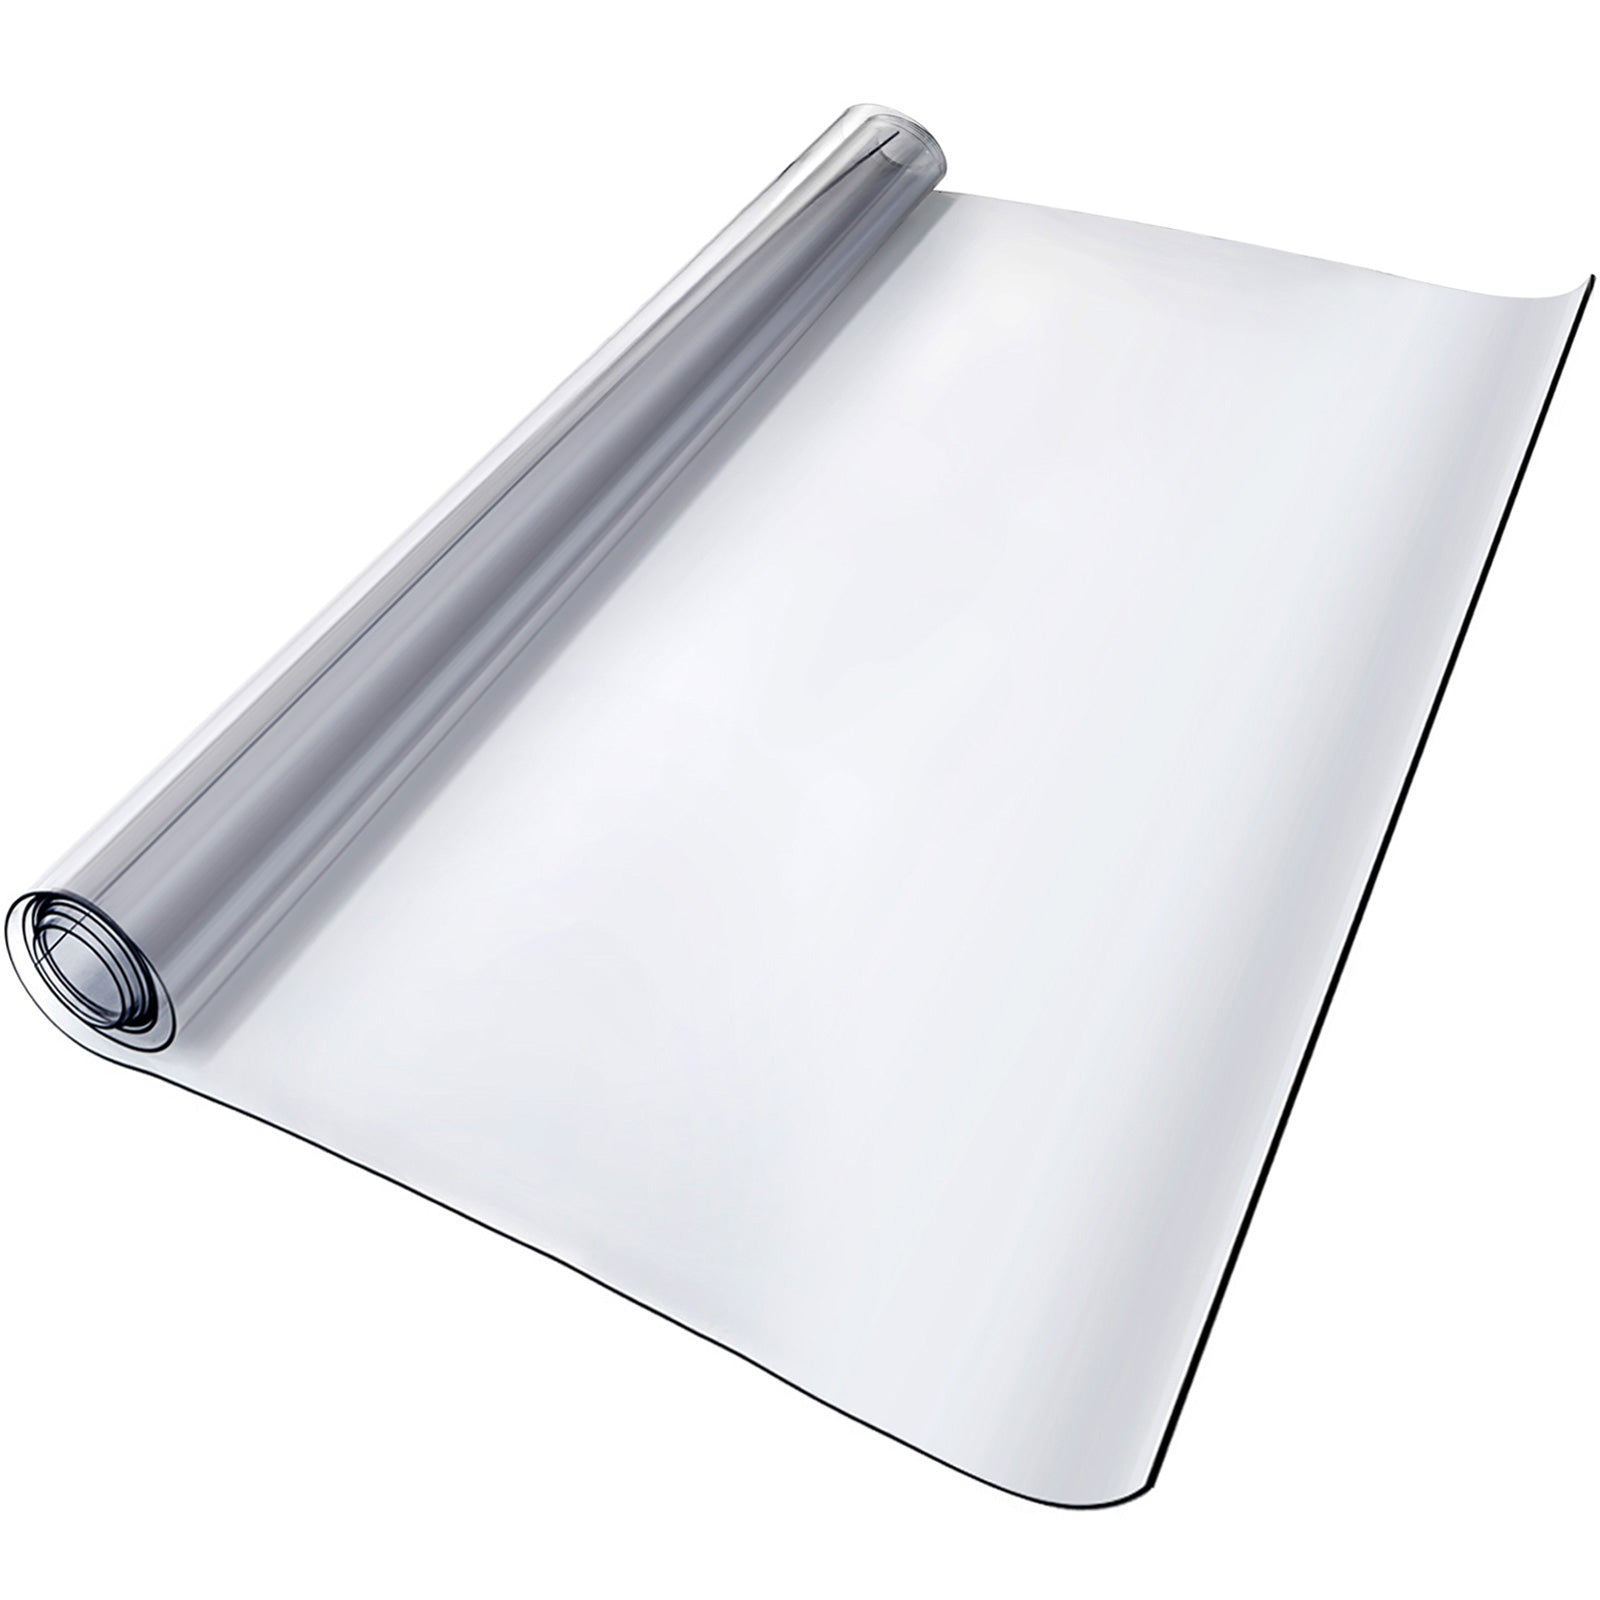 "Pvc Tablecloth Protector Table Cover 46"" X 96"" Desk Pad Soft Glass Desk Top"